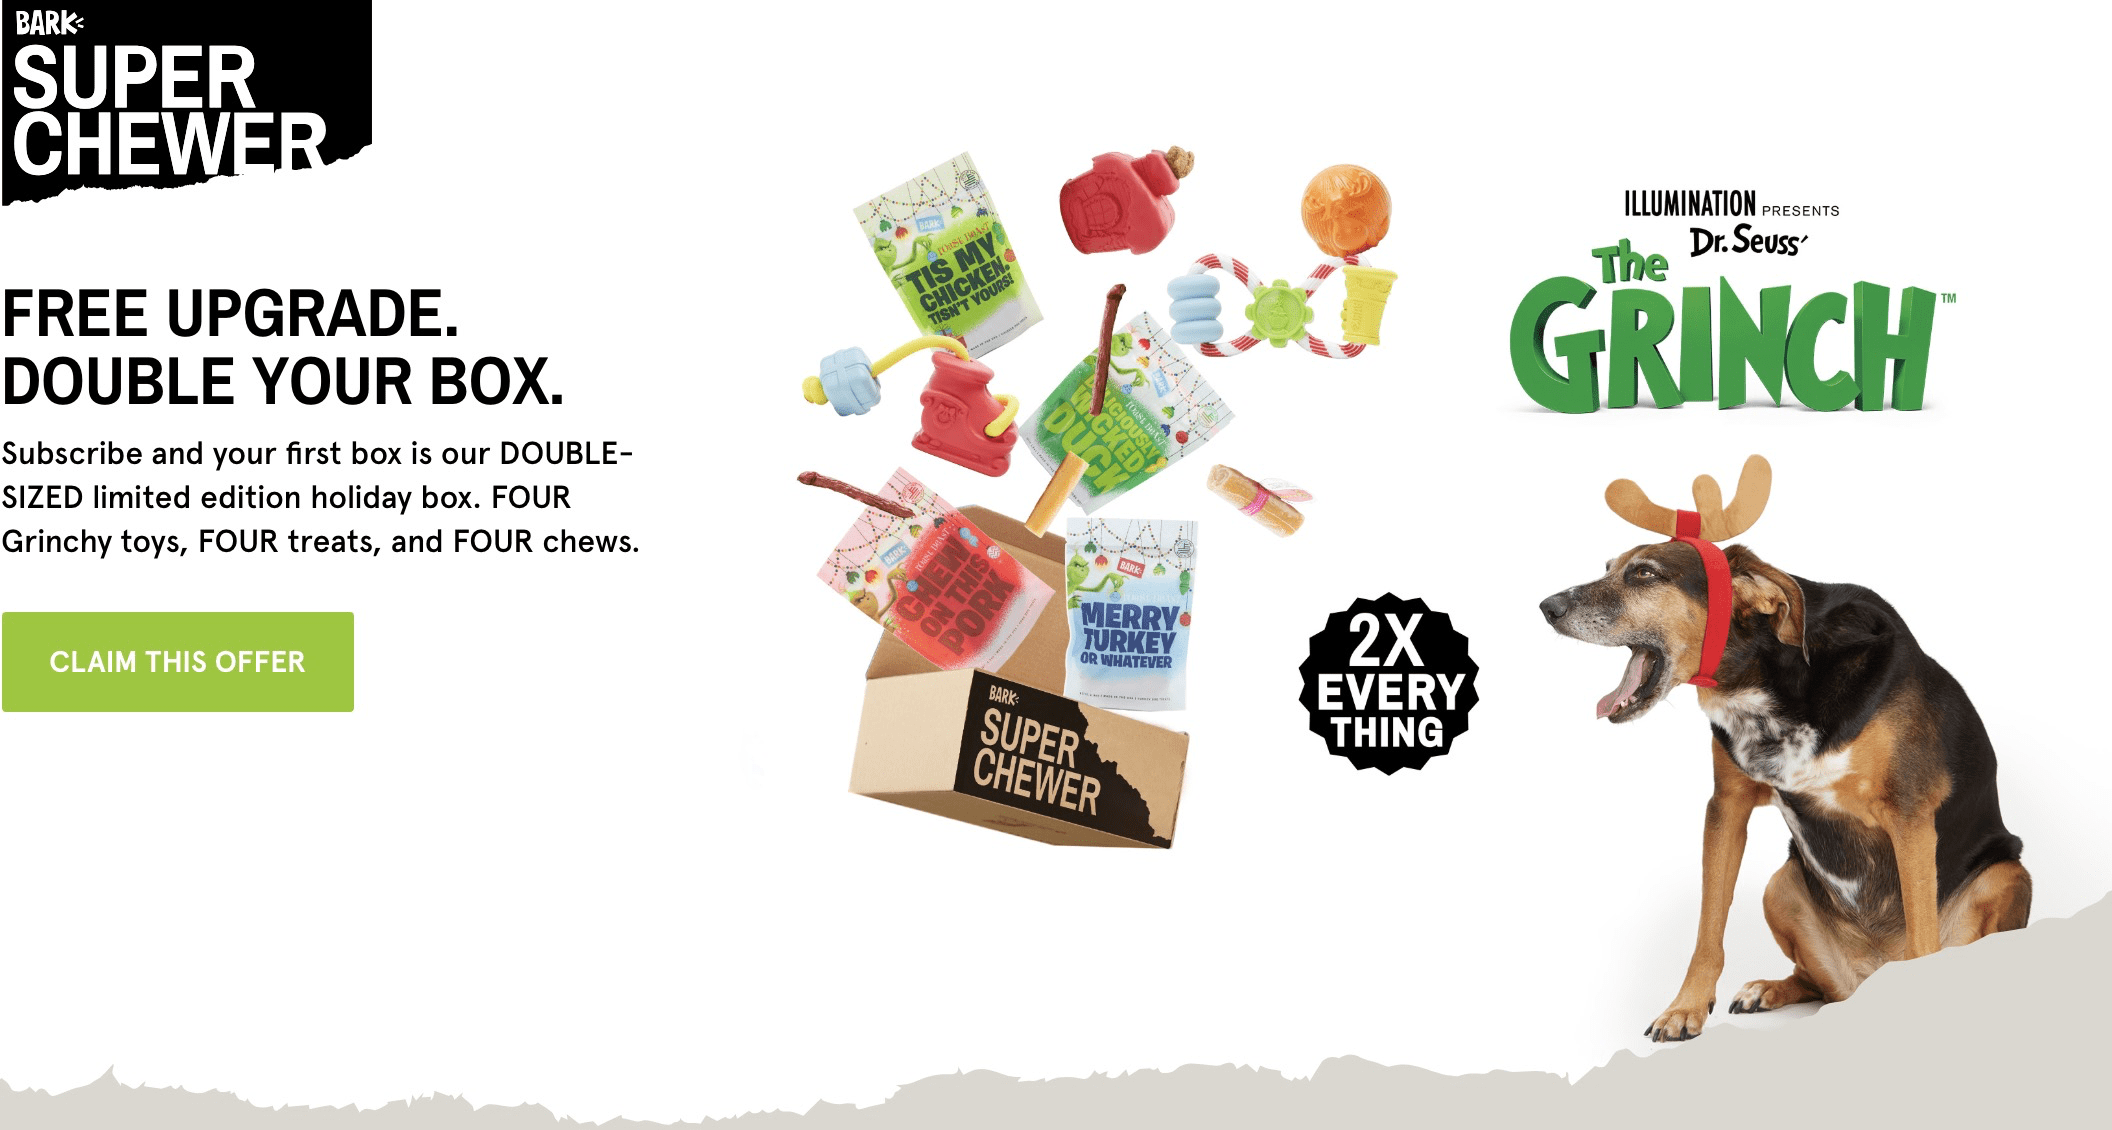 BarkBox Super Chewer Coupon: Double Your Box First Month Deal + GRINCH!